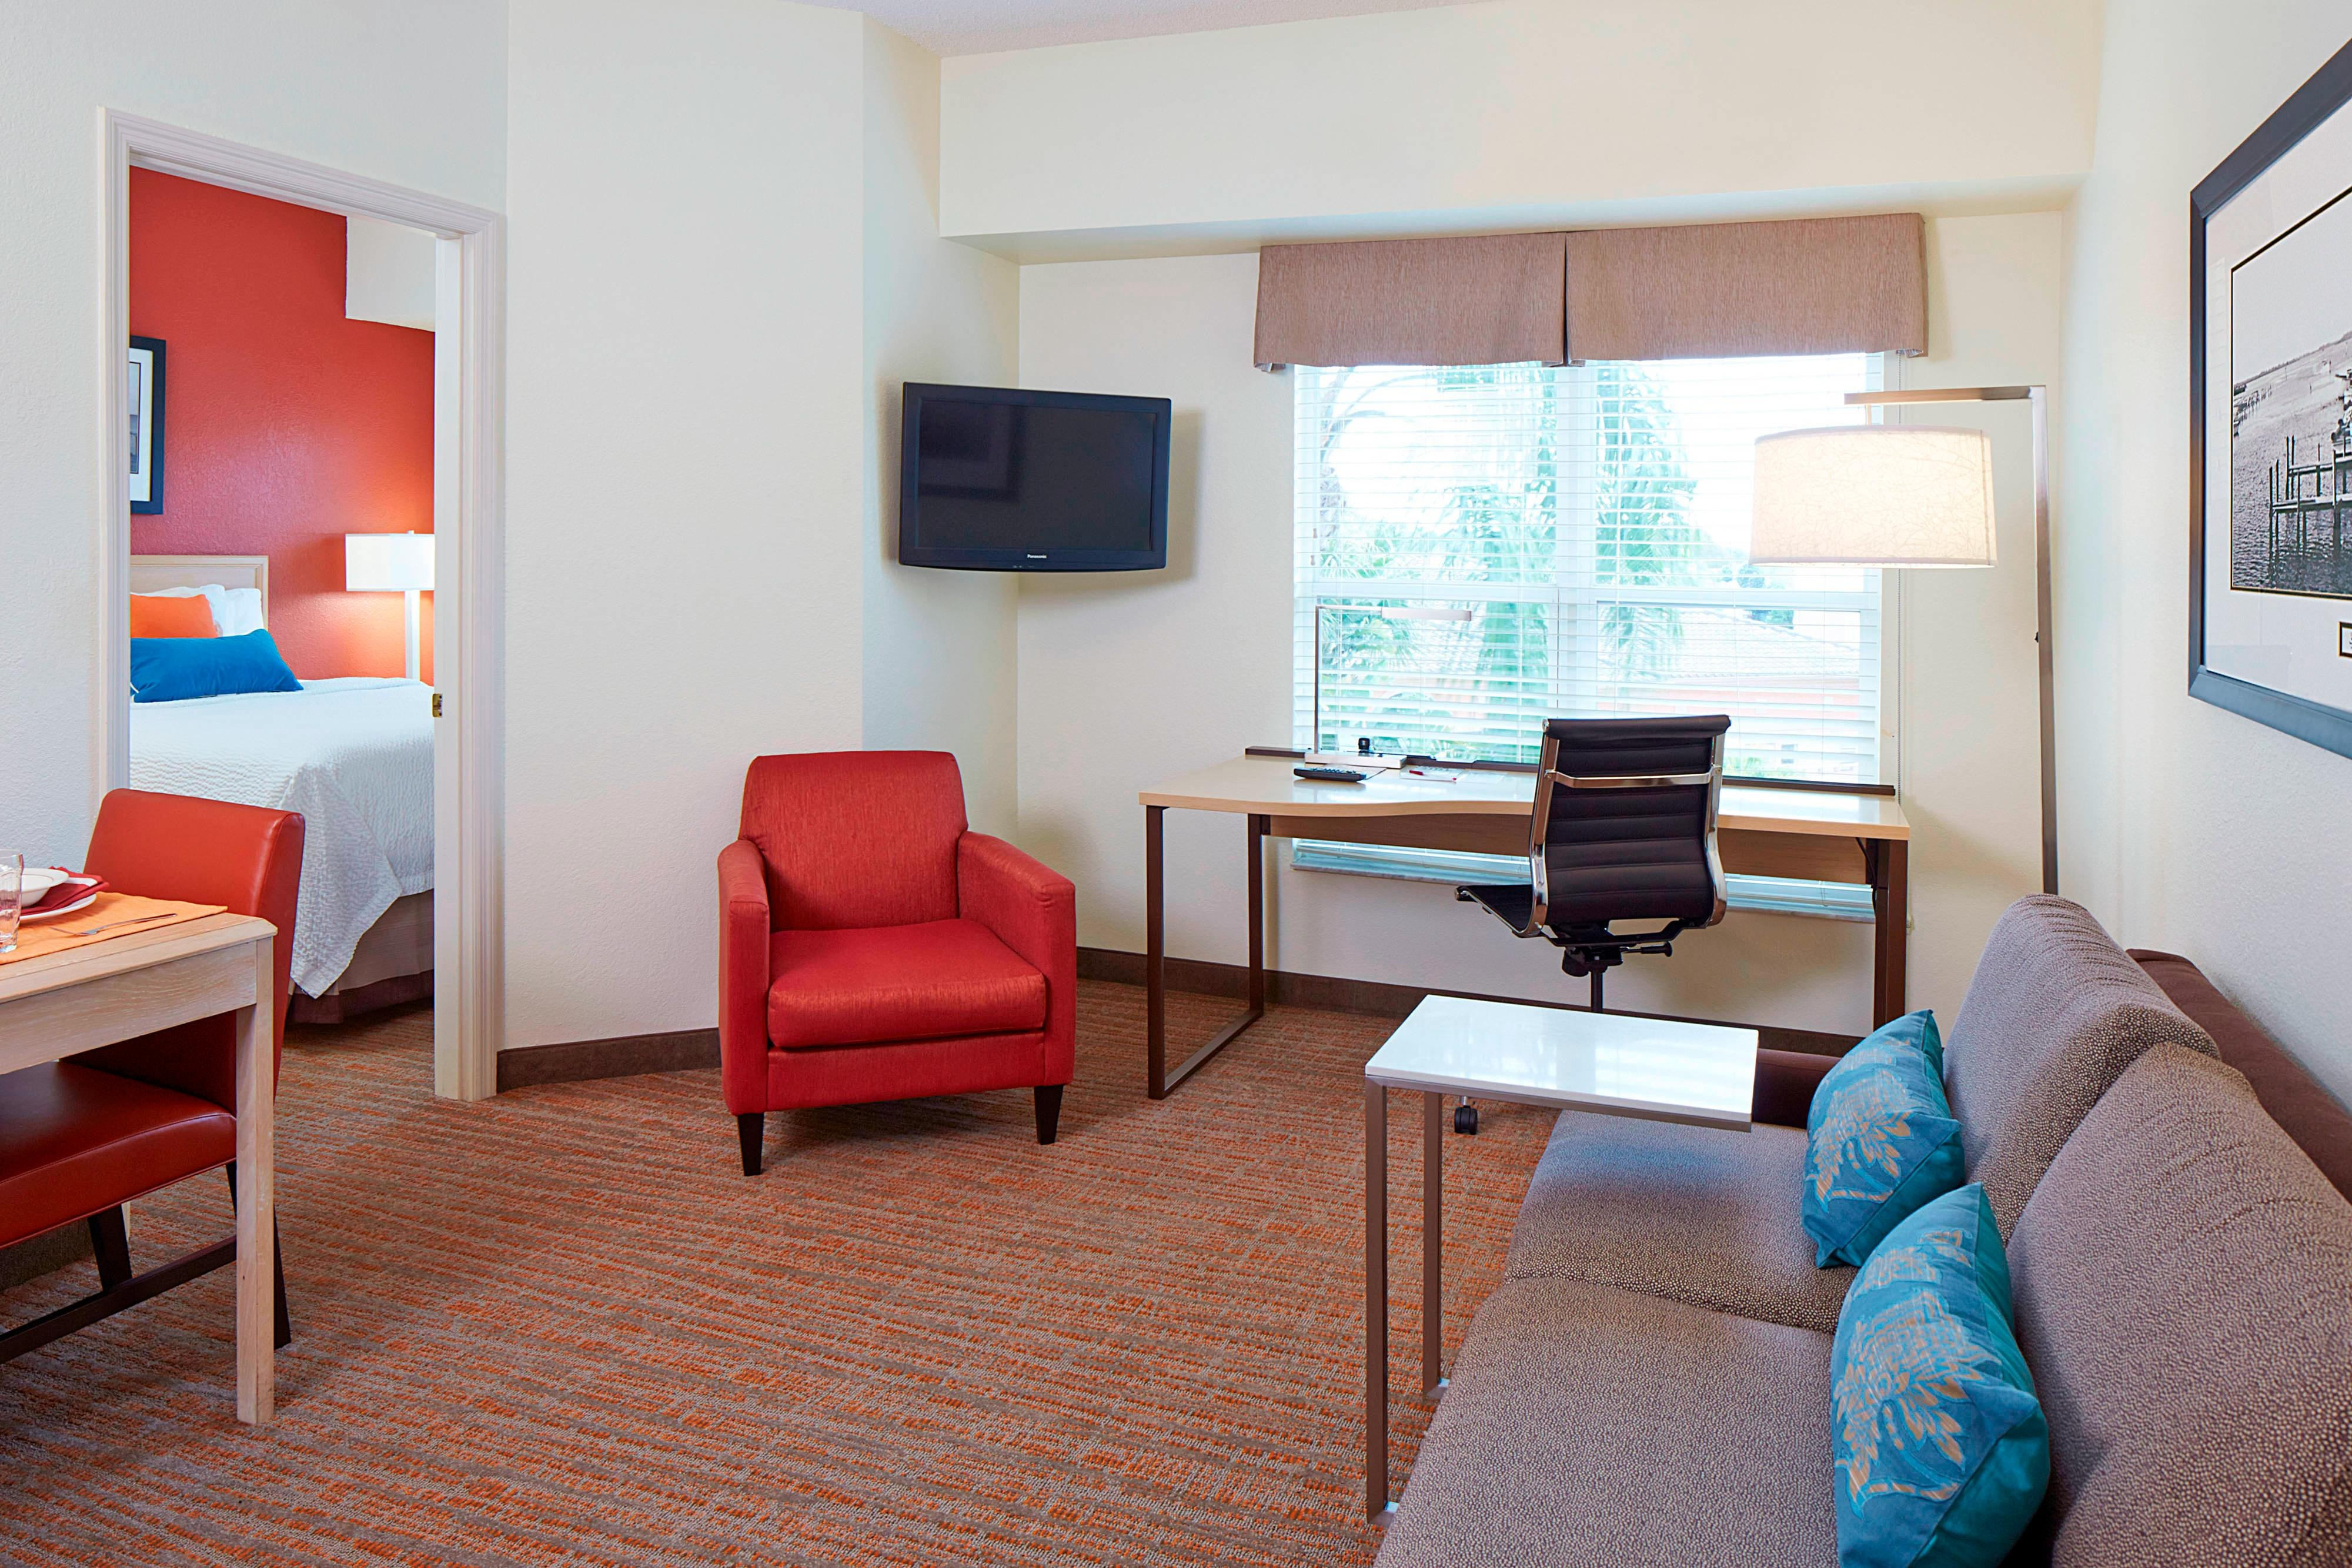 Naples hotels hotels in naples florida residence inn - Cheap 2 bedroom suites in miami beach ...